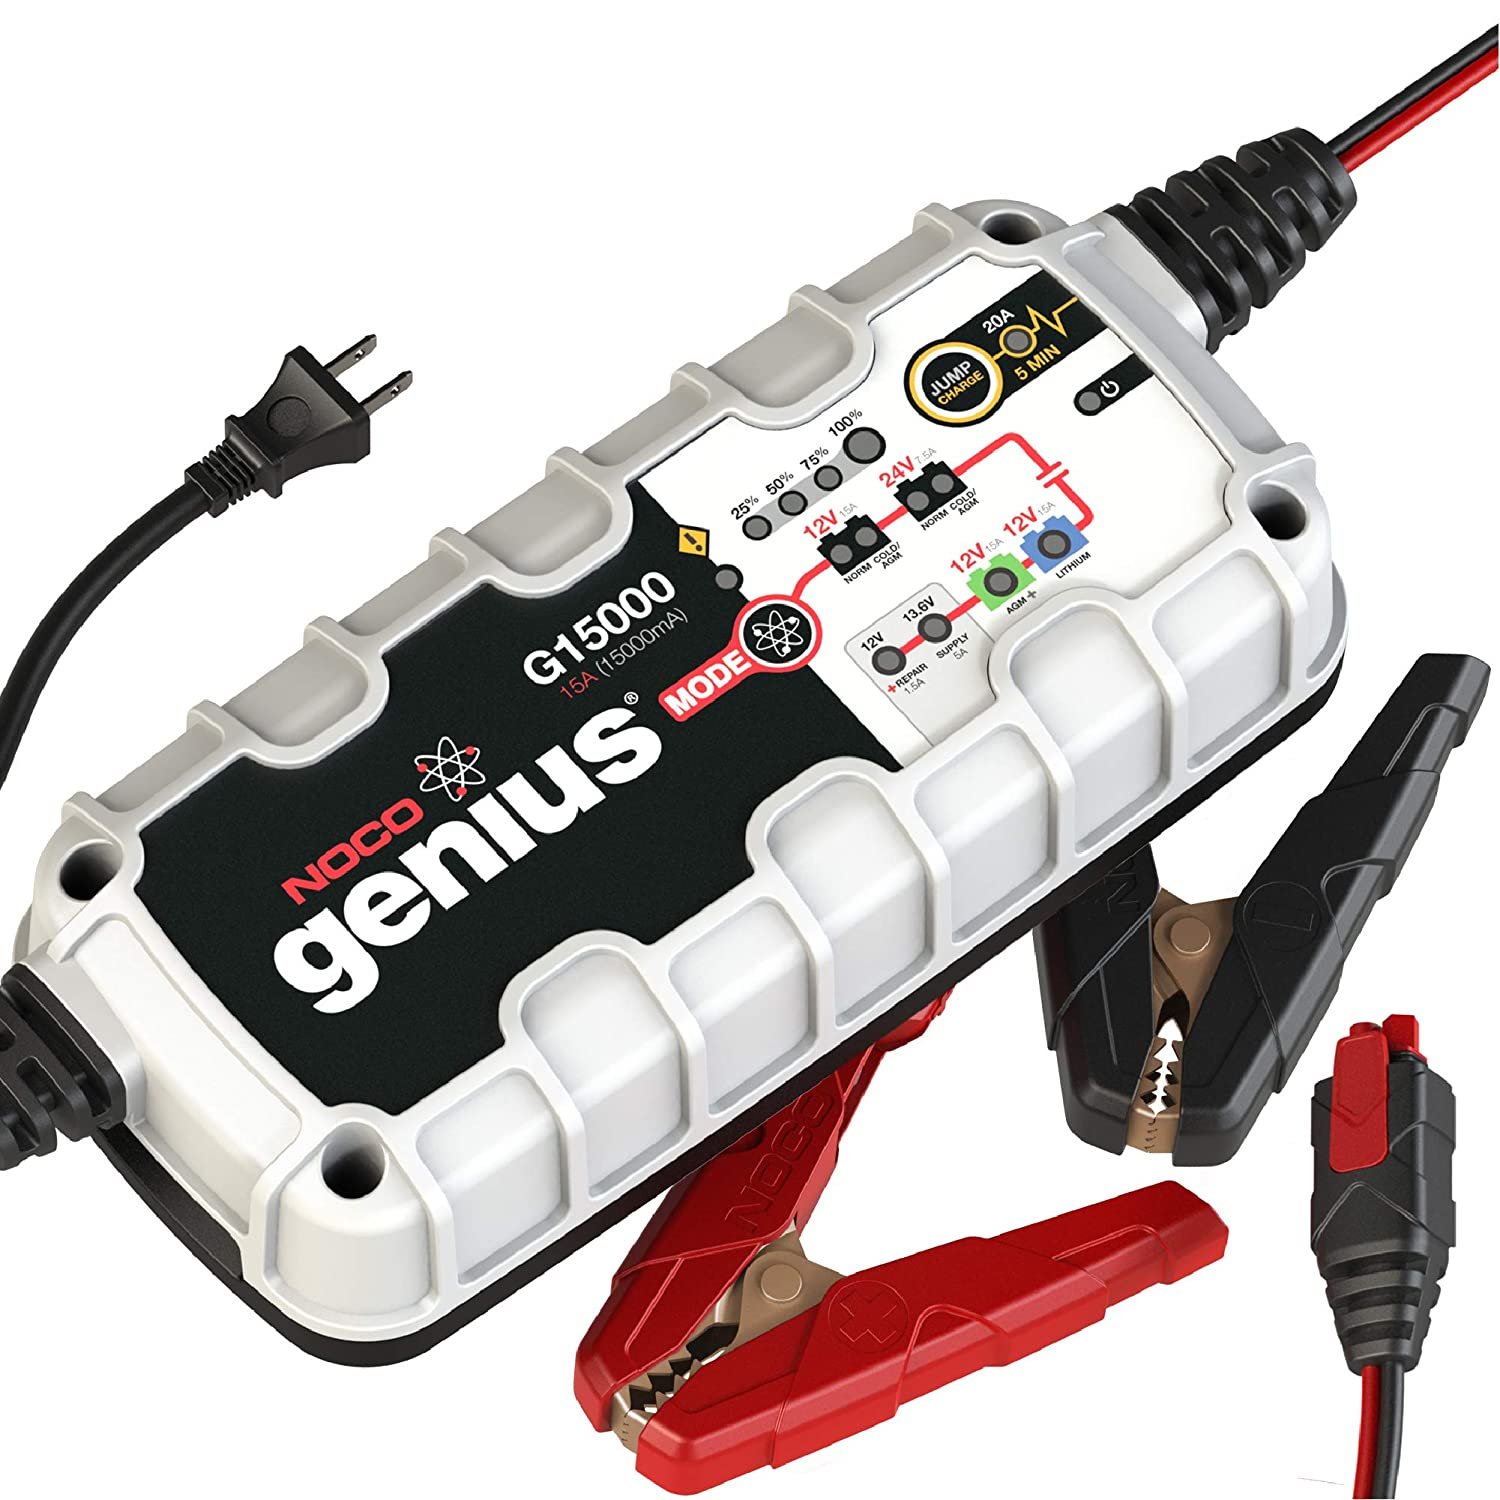 NOCO Genius G15000 Pro-Series Battery Charger}